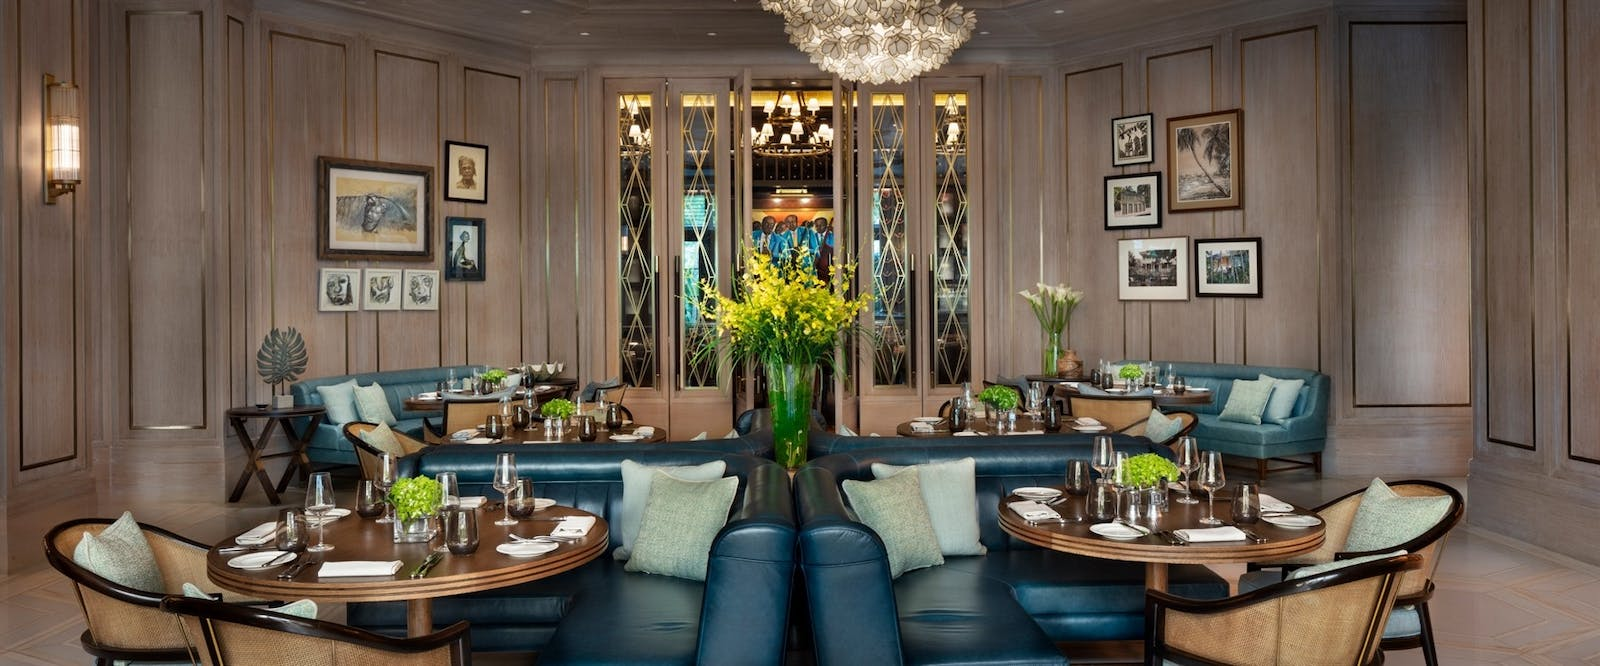 Common Wealth Dining Room at Rosewood Baha Mar, Bahamas, Caribbean